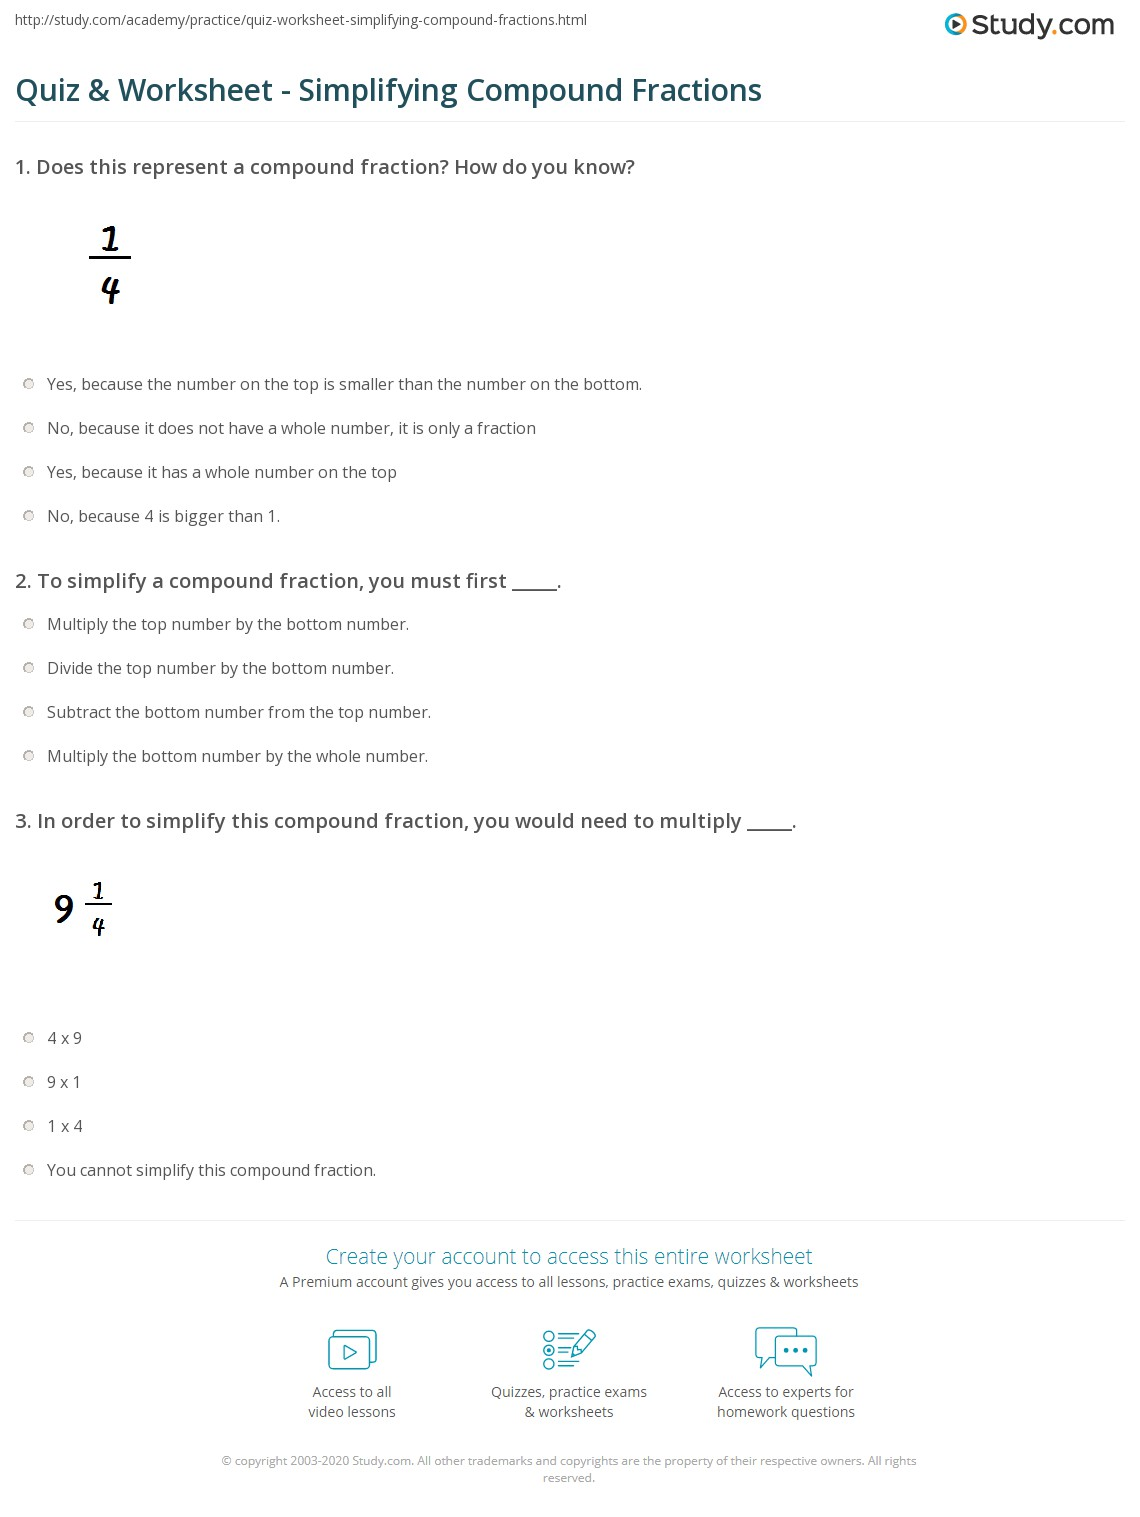 quiz  worksheet  simplifying compound fractions  studycom print simplifying compound fractions worksheet